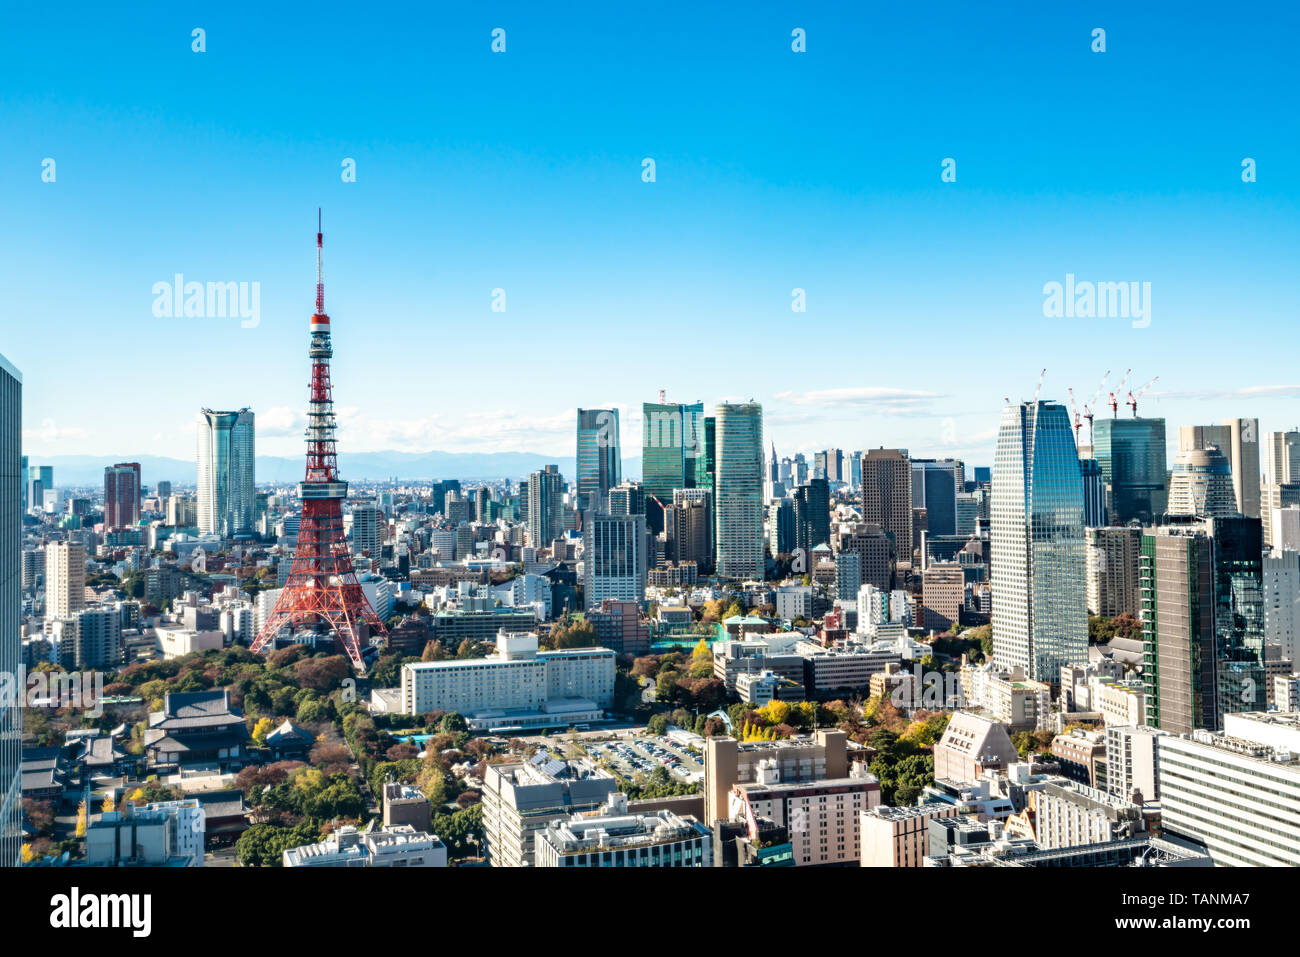 Tokyo cityscape - modern aerial view with Roppongi and Minato wards. - Stock Image